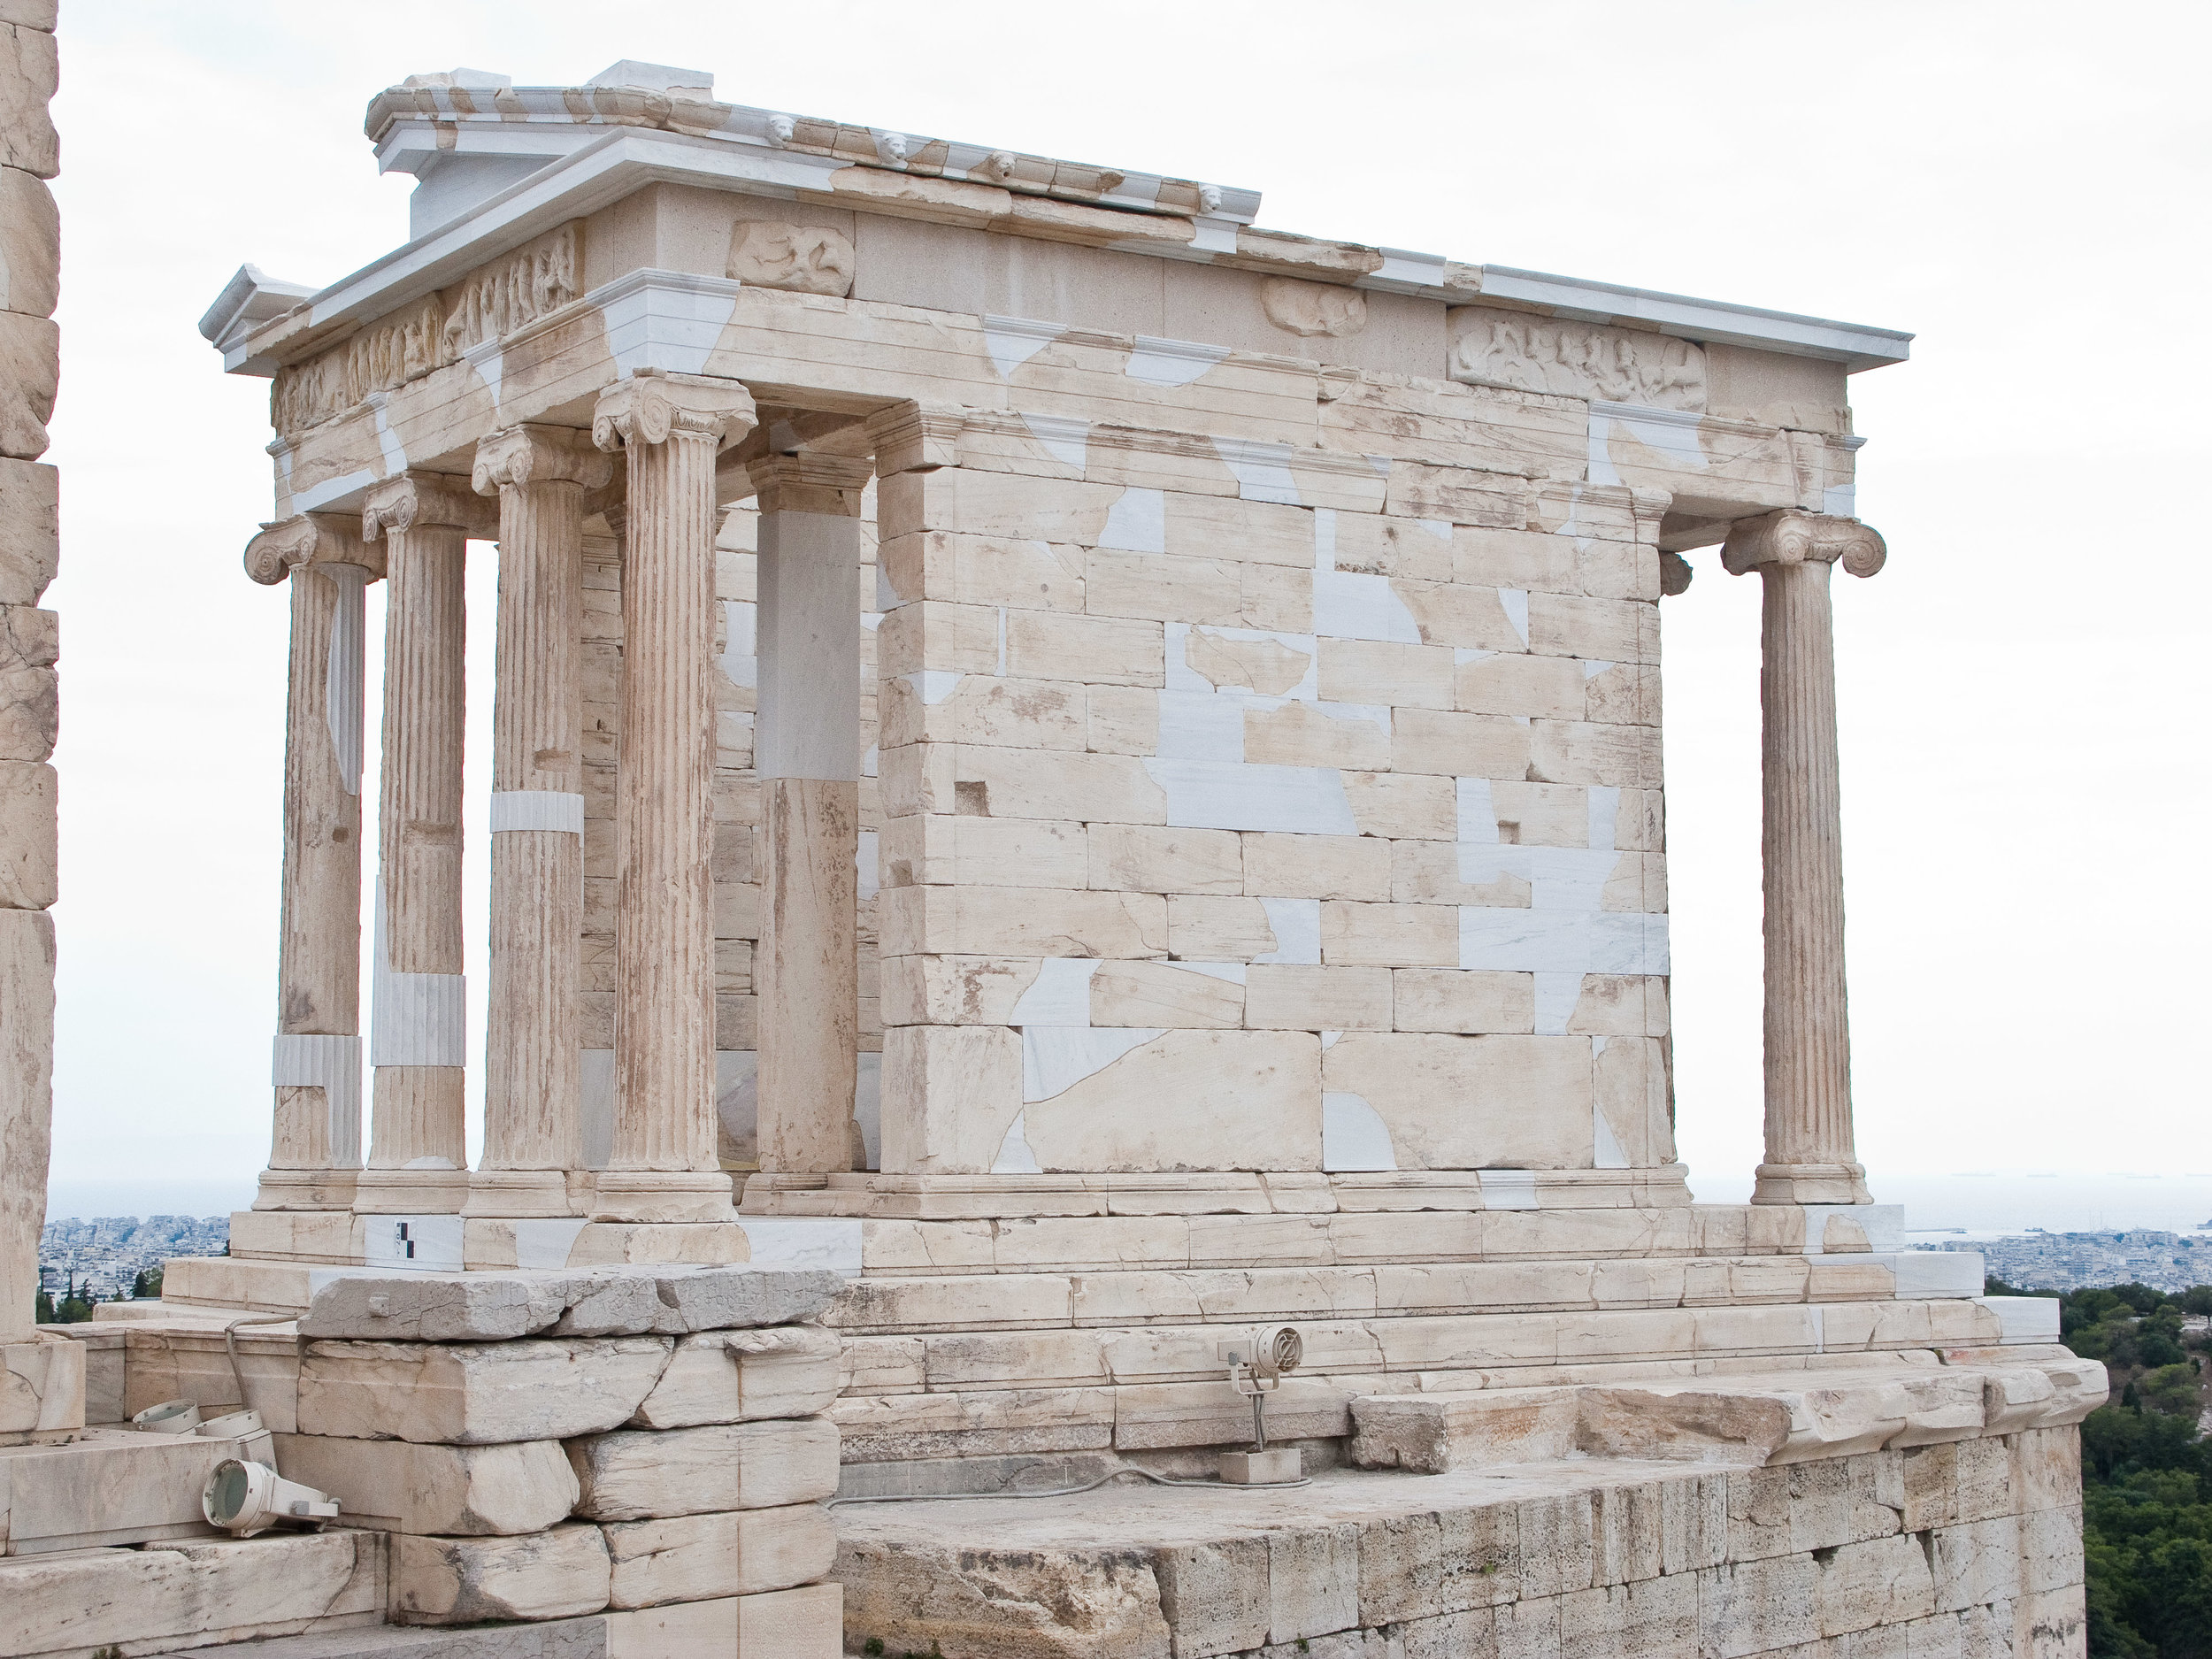 The Parthenon, Athens, Greece (8 images)